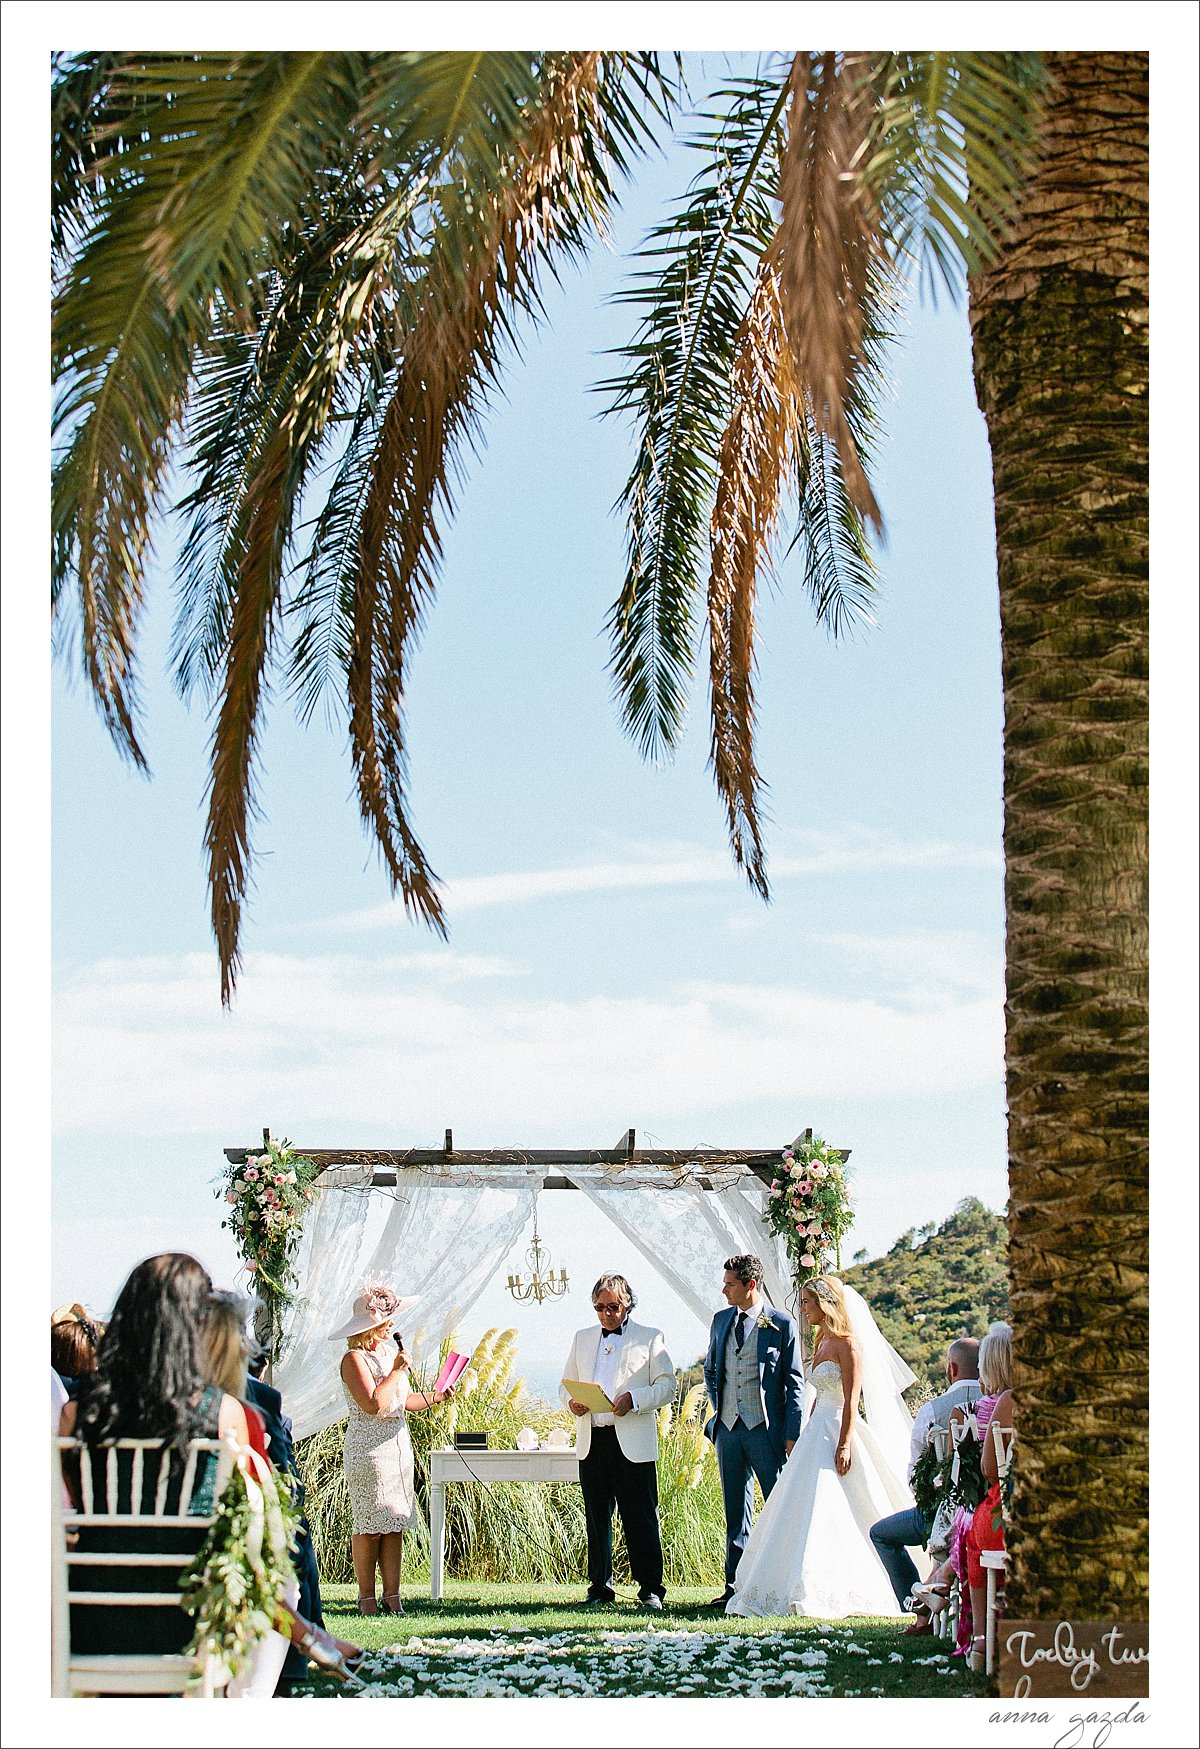 claire-ziad-wedding-venue-pedro-jimenez-marbella-spain-39143